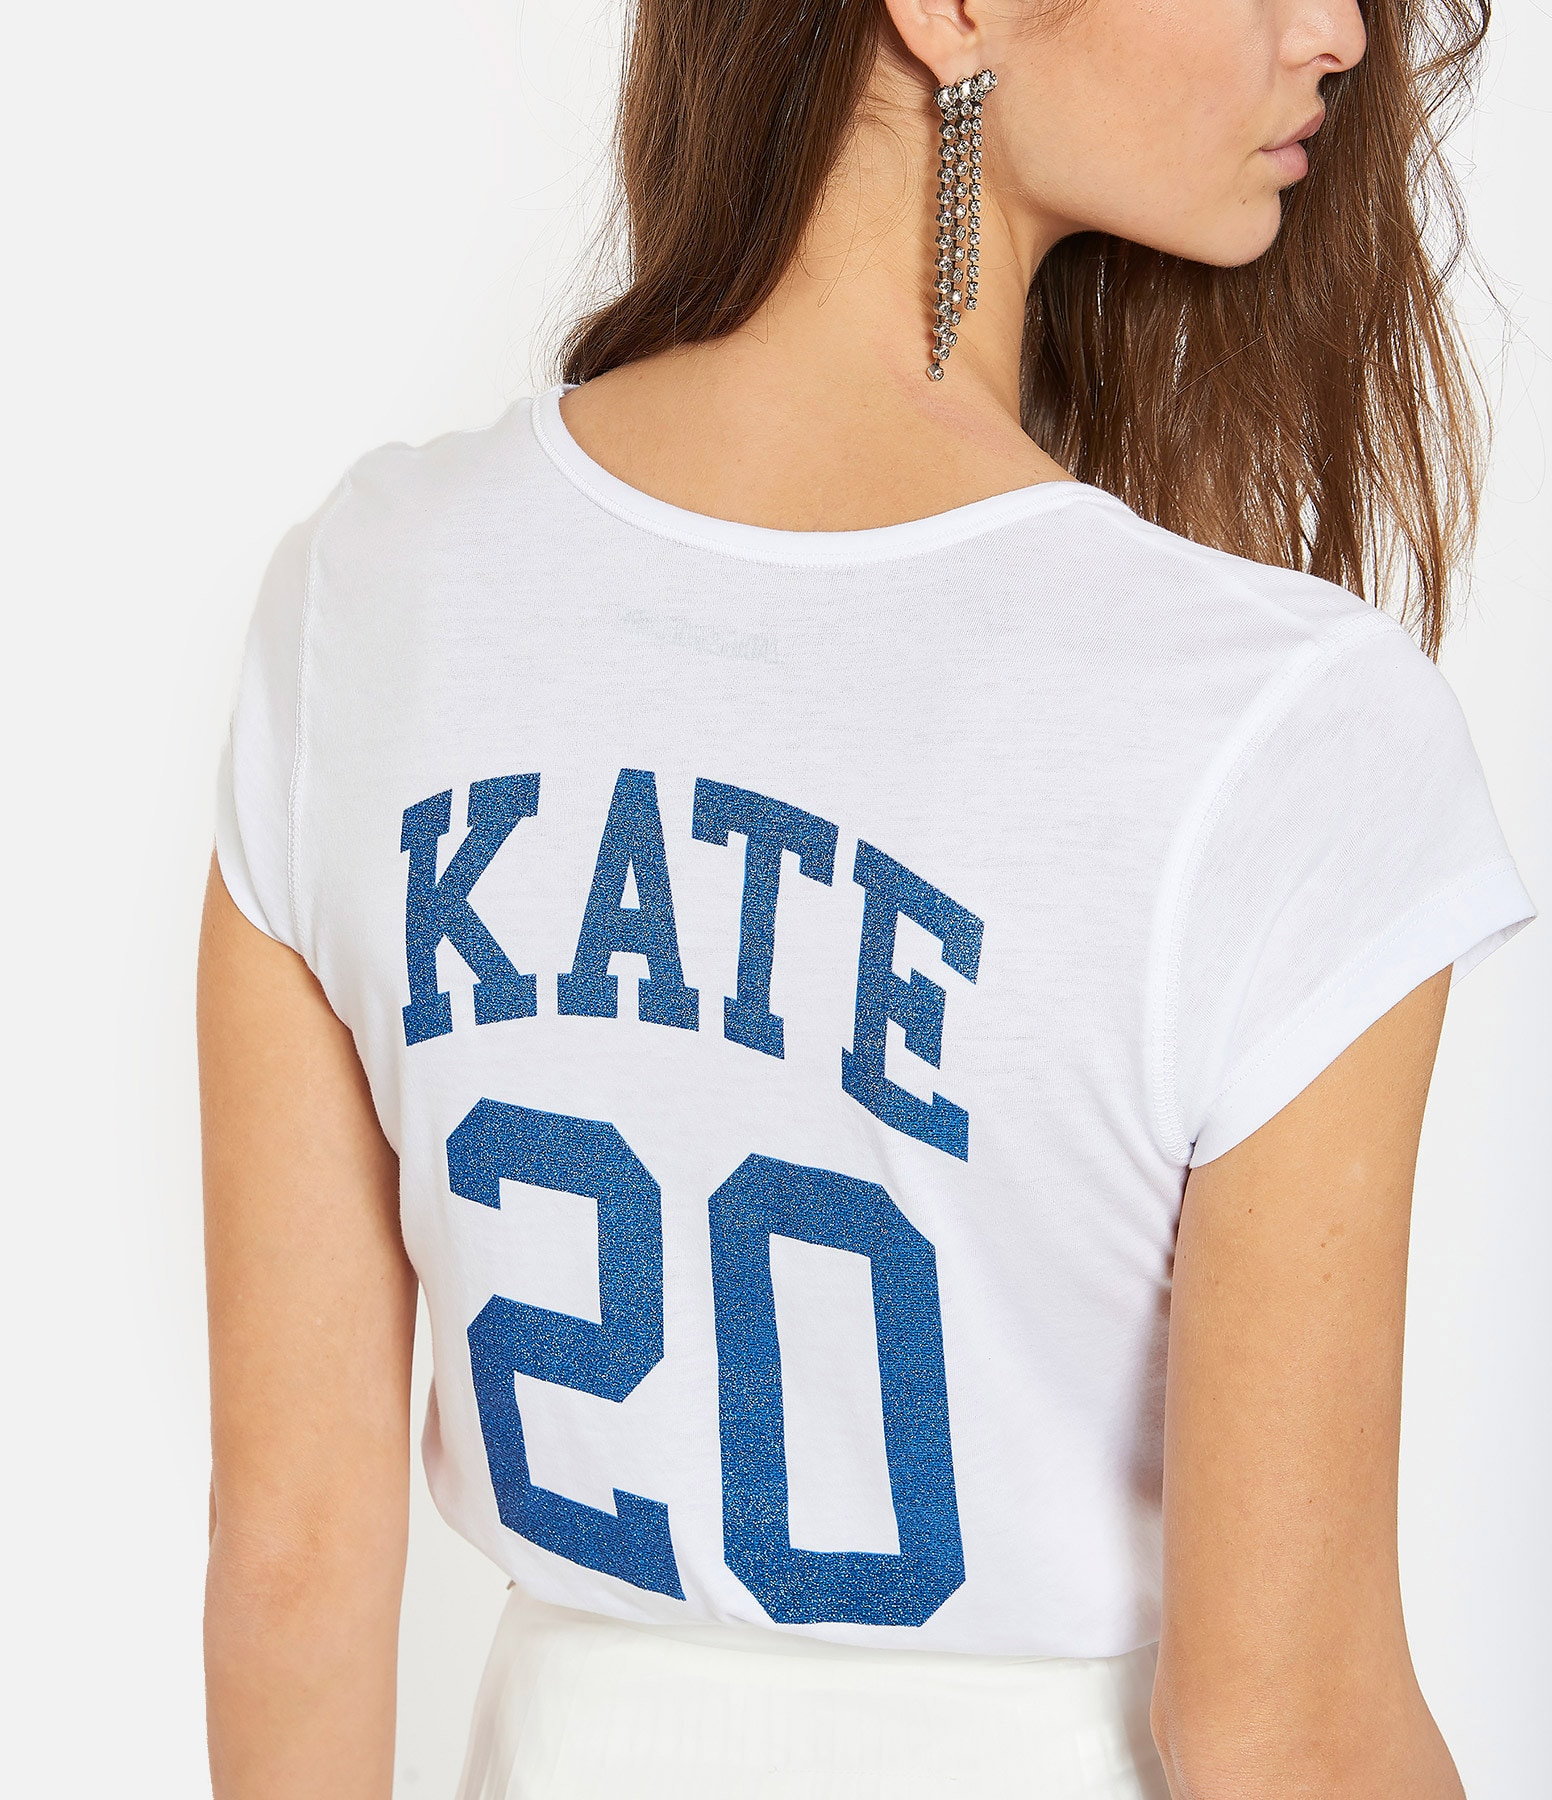 ZADIG & VOLTAIRE - Tee-shirt Karta Coton Blanc, Collection Kate Moss